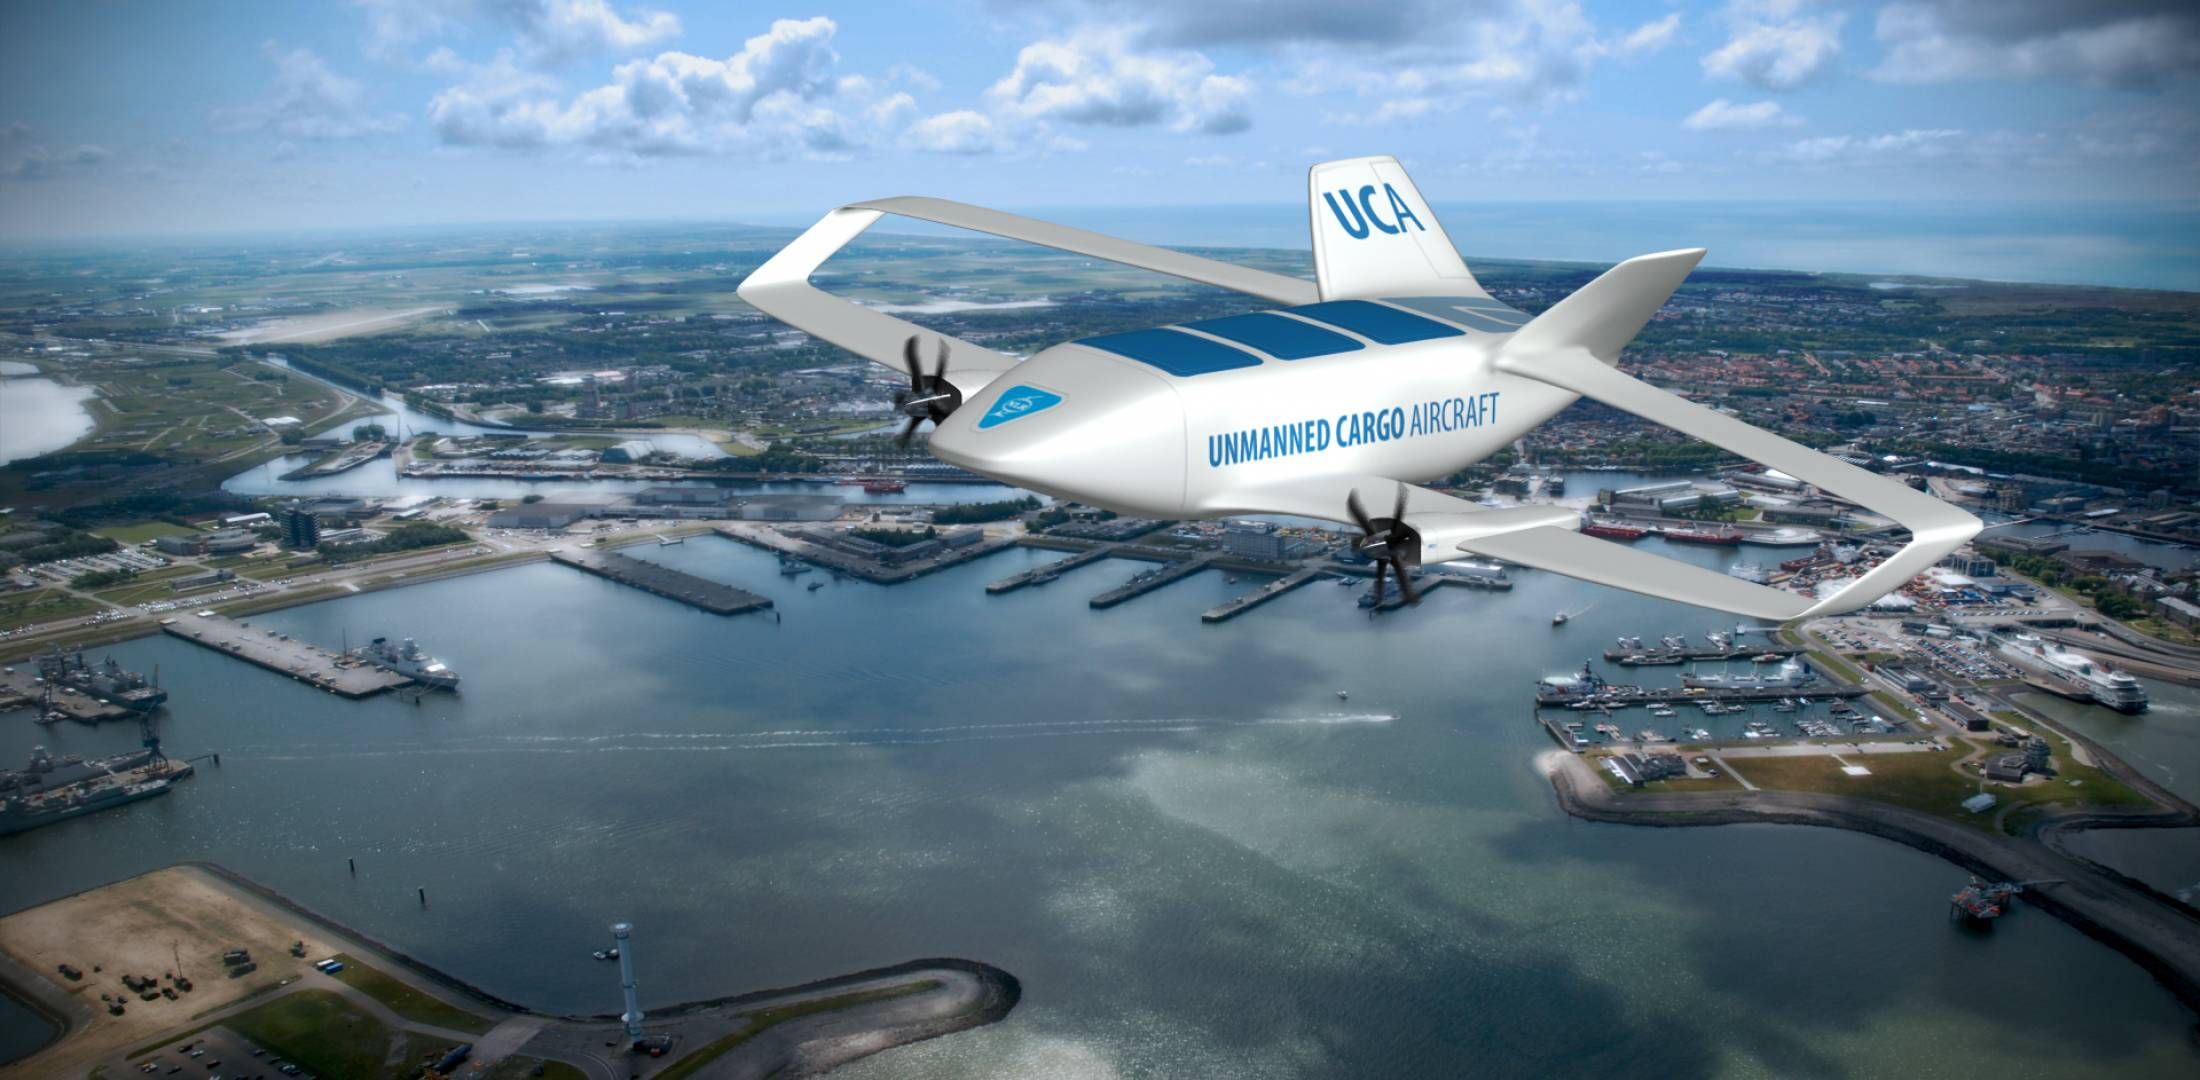 Unmanned cargo aircraft concept